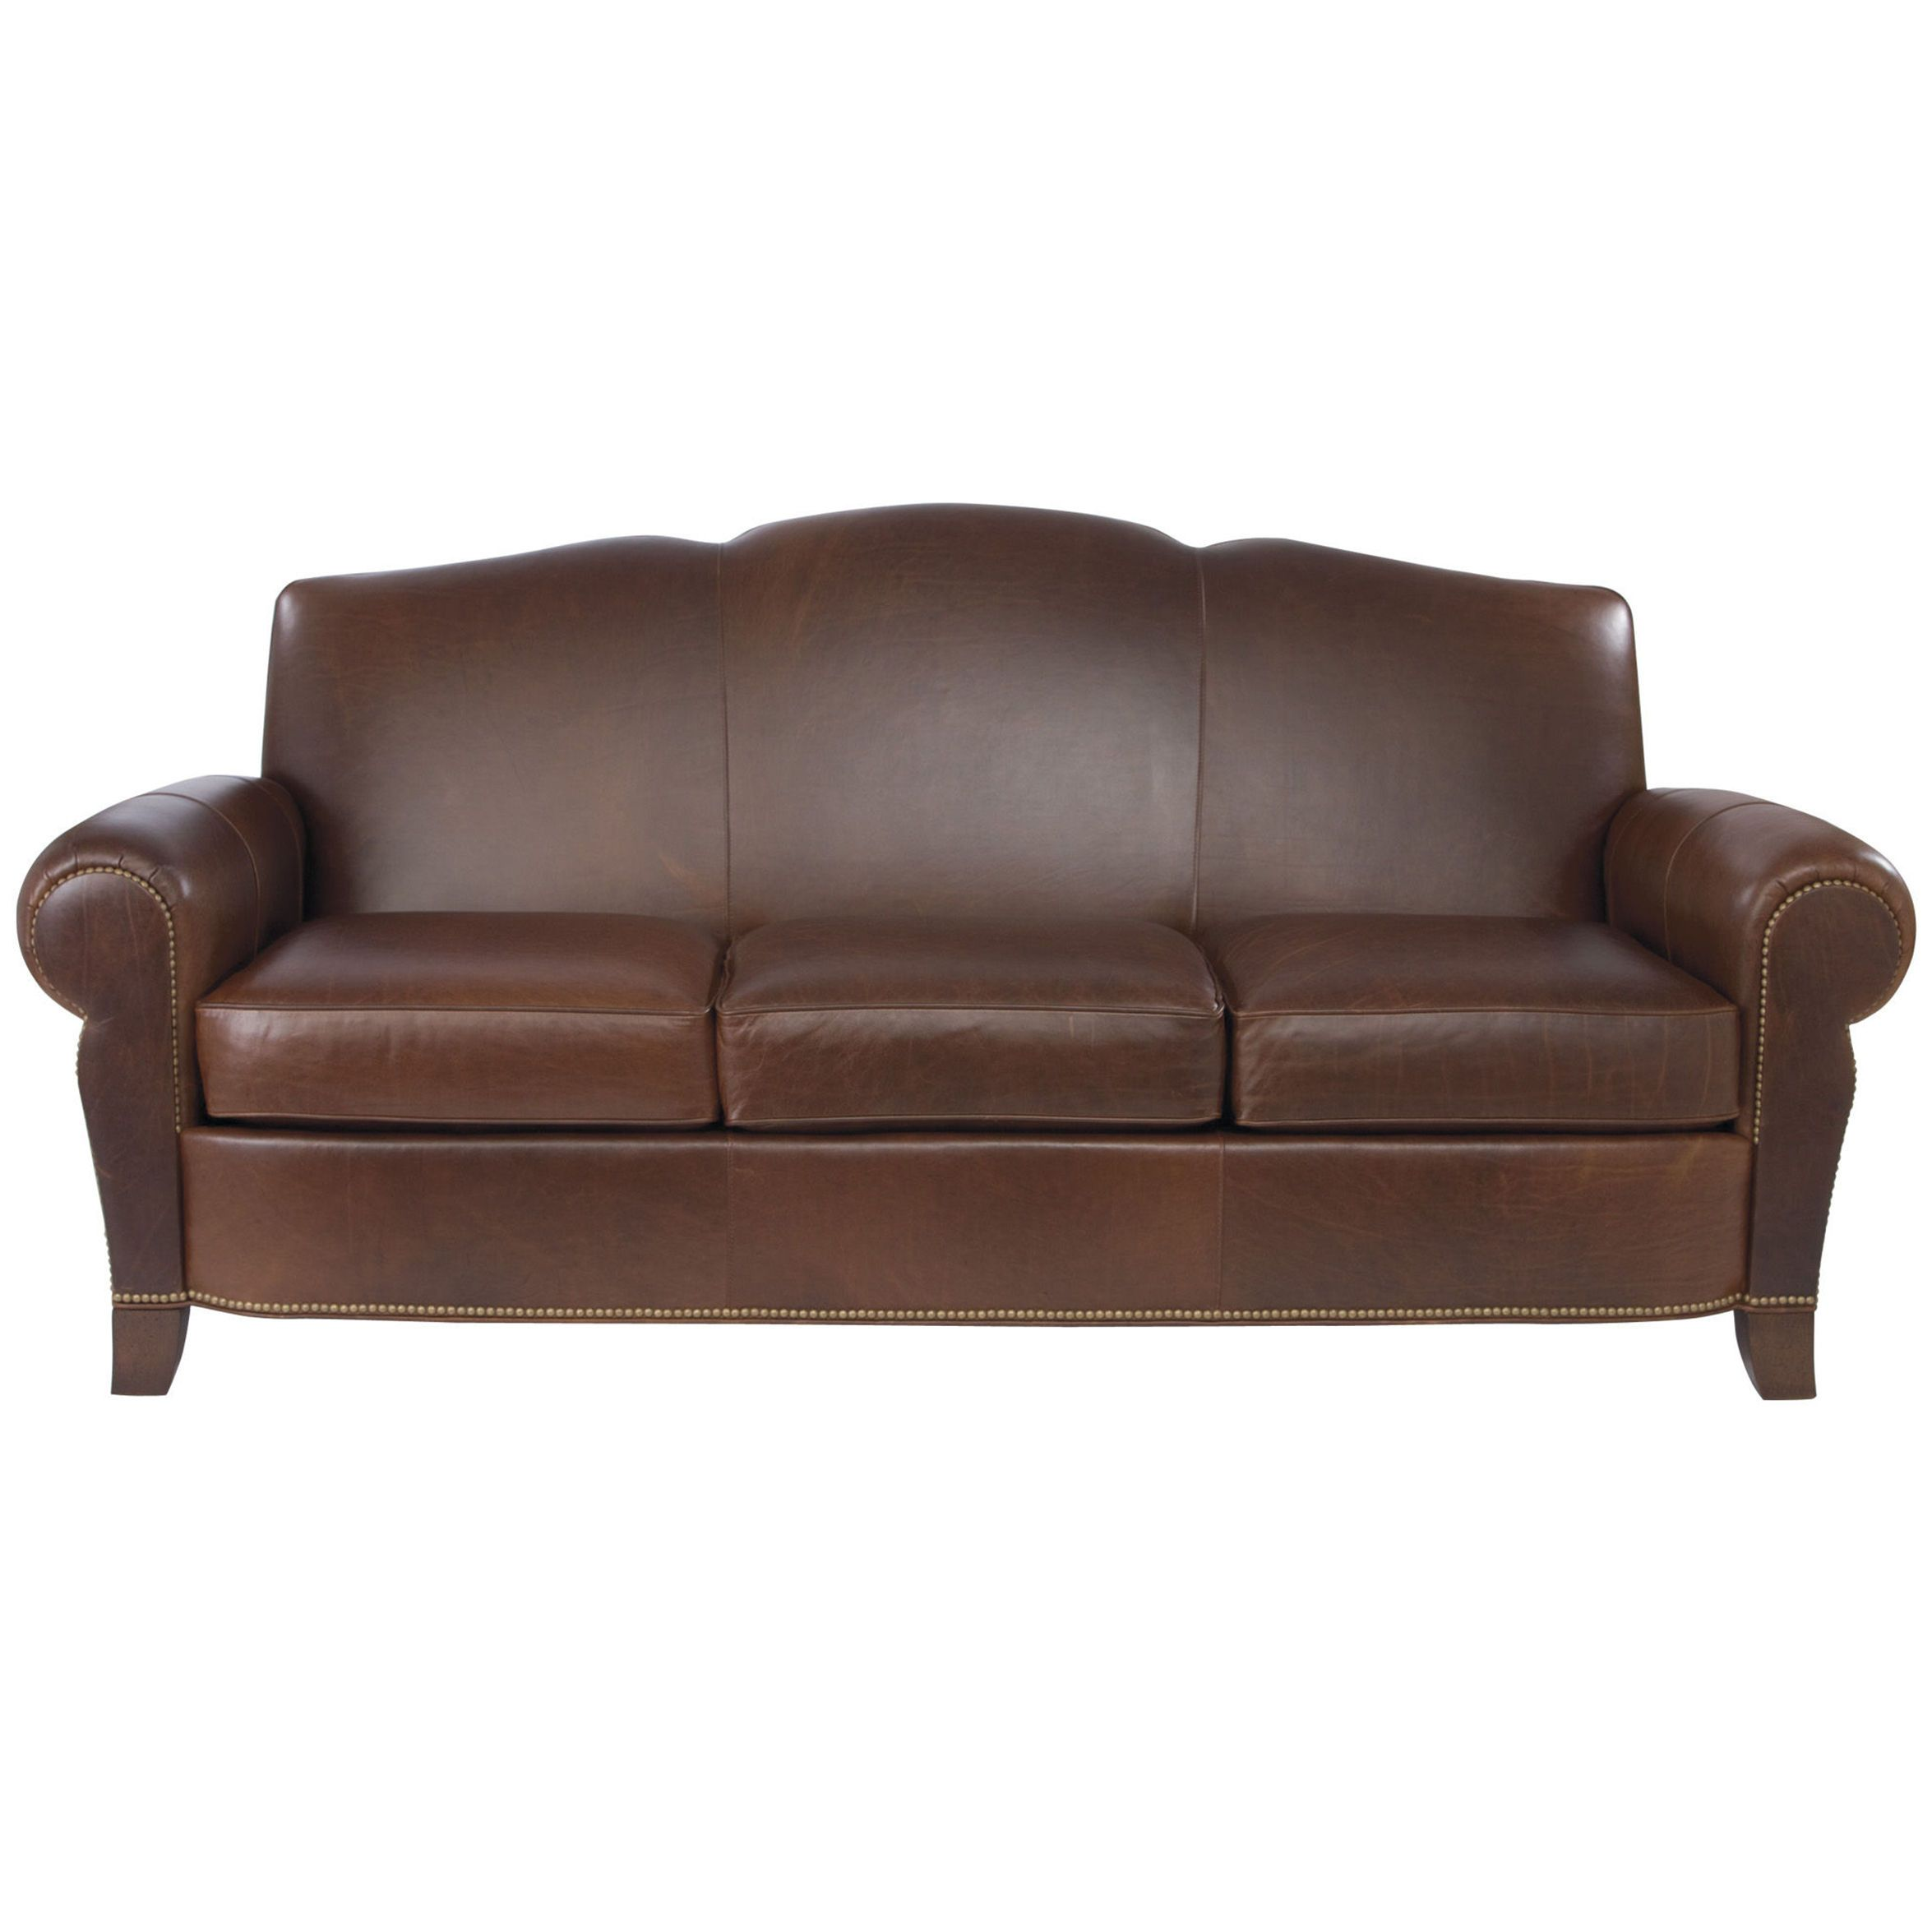 Sofas For Sale Paloma Three Cushion Leather Sofa Ethan Allen US Can be customized to a tan